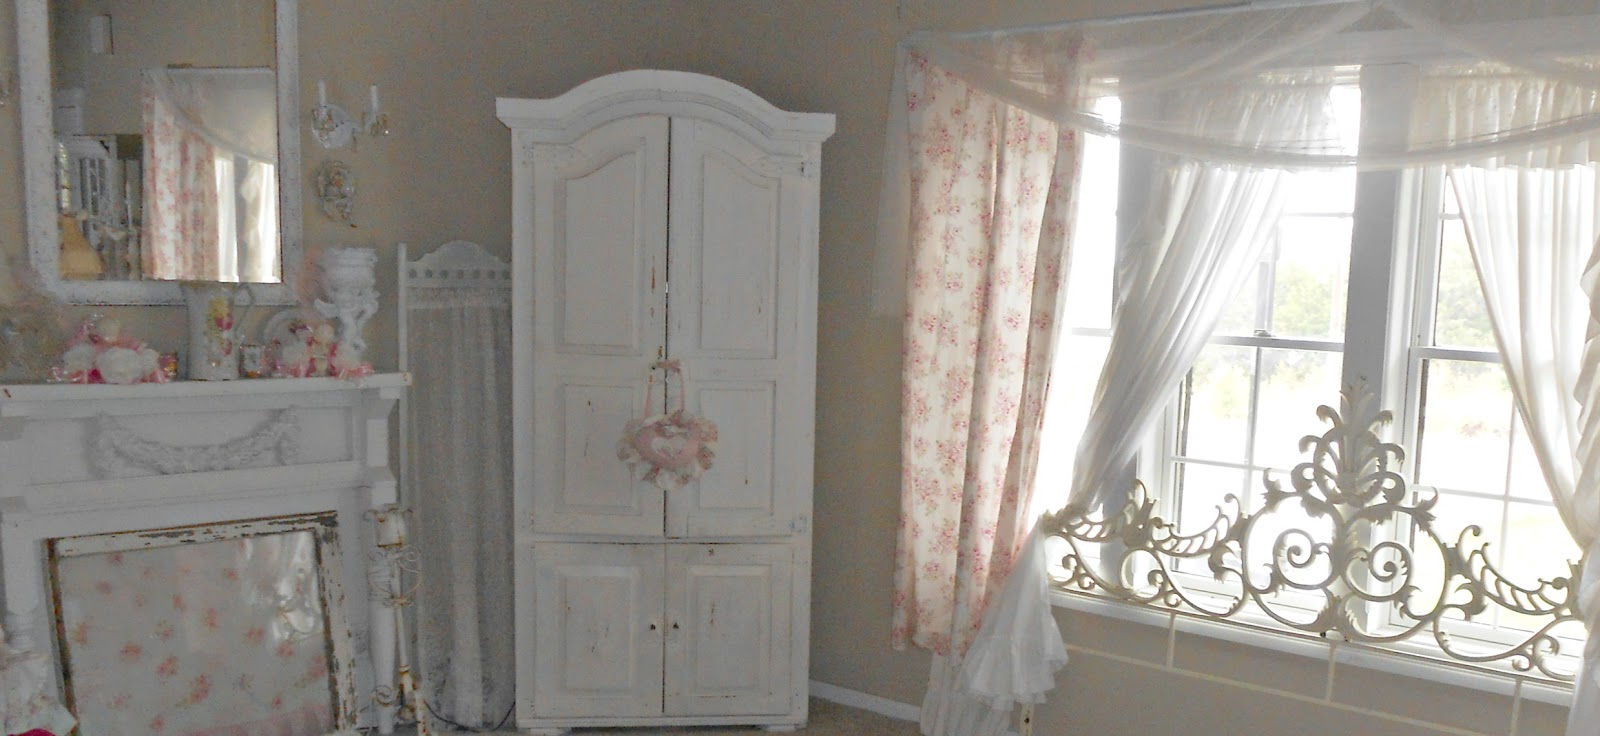 How to shabby chic furniture the basic woodworking - Shabby chic interiors soggiorno ...